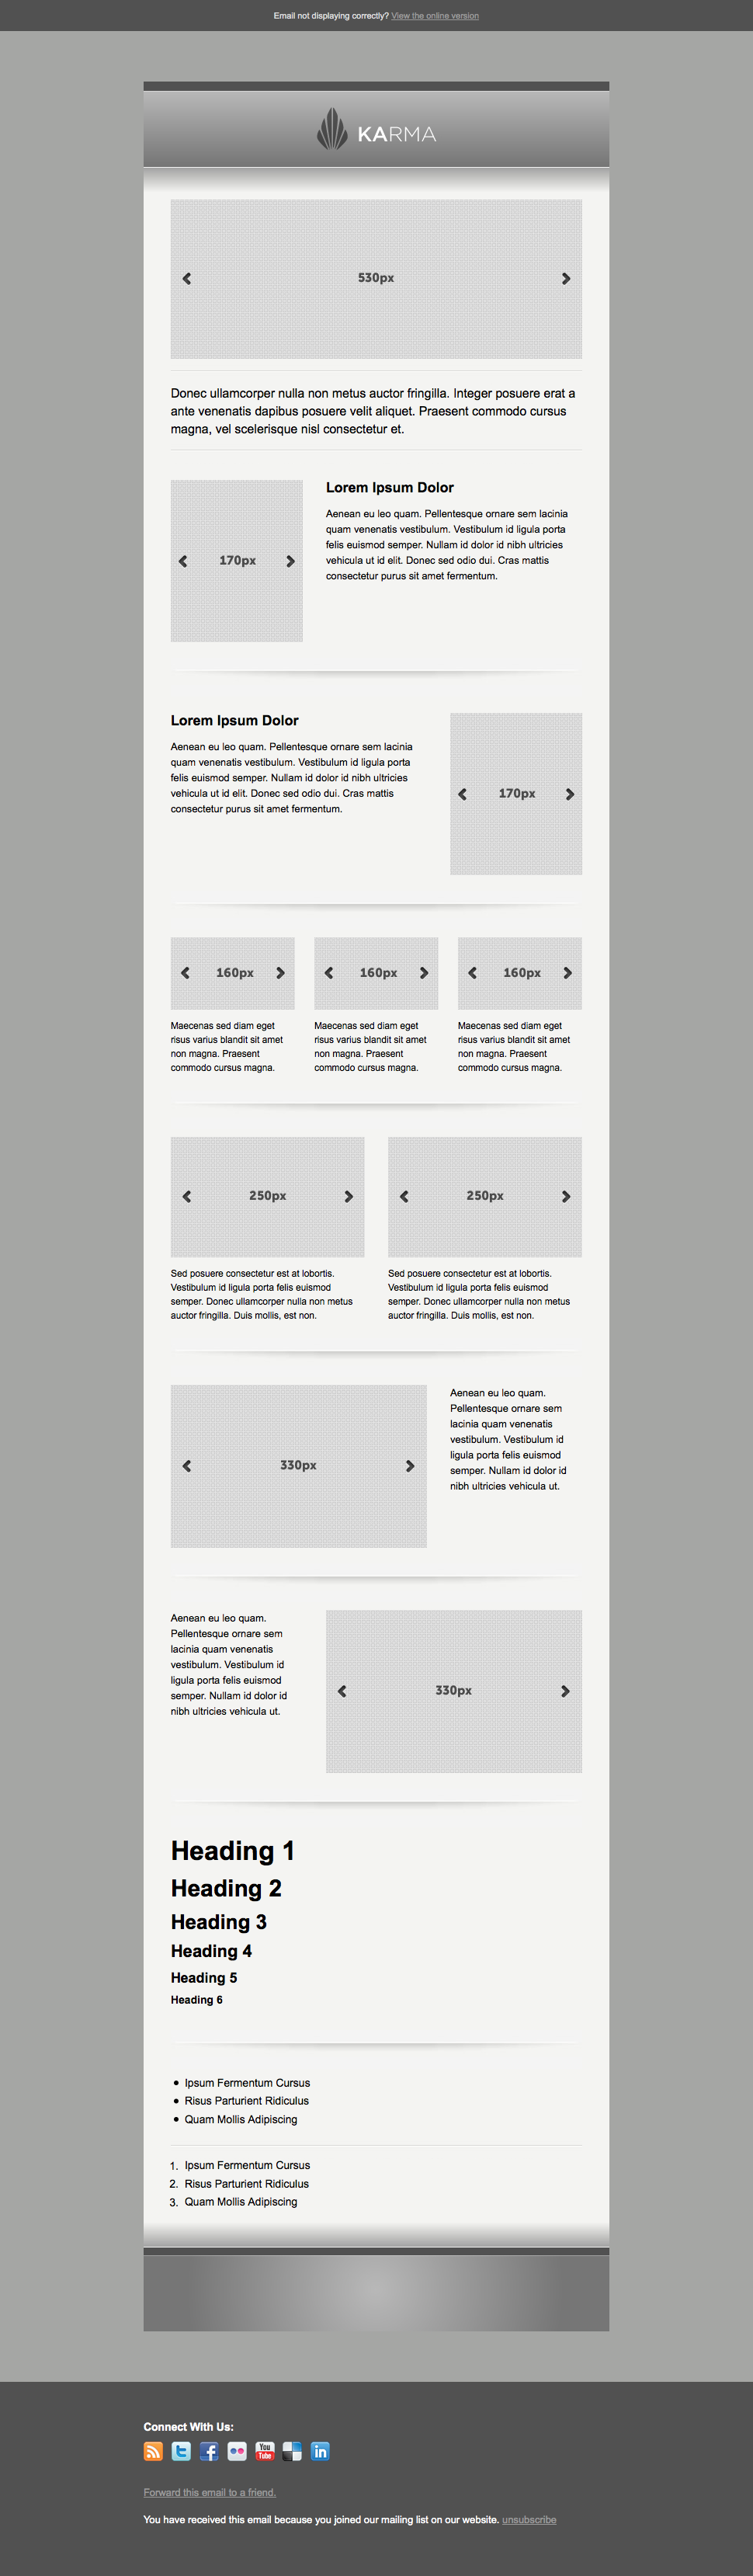 Karma - Clean Modern Corporate Email Template